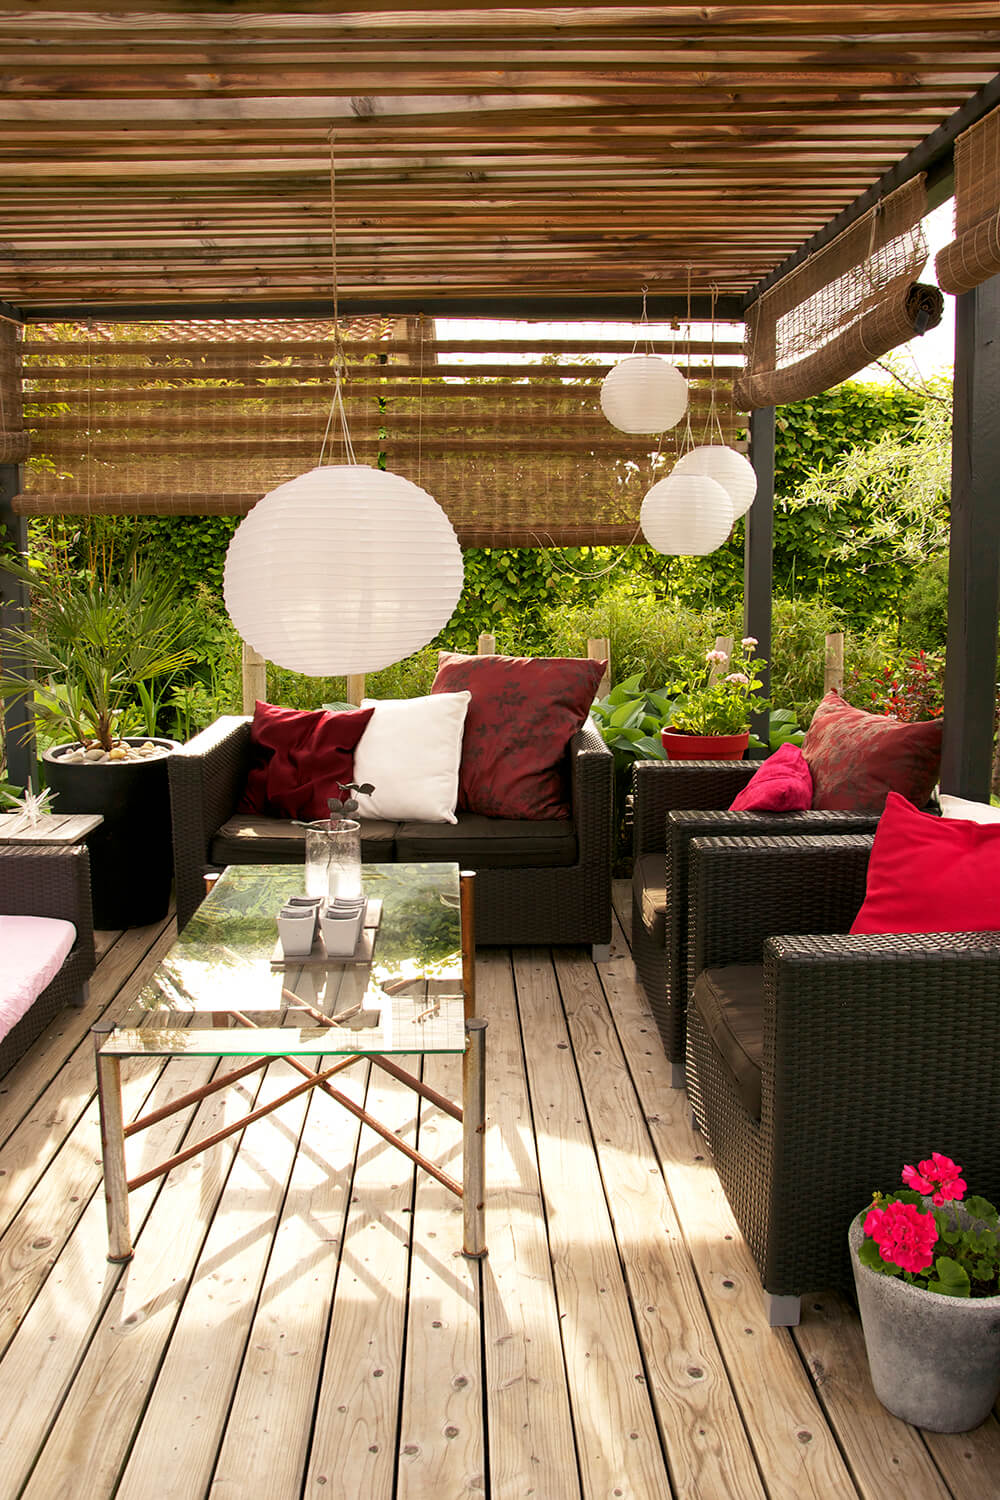 This deck offers lovely seats and throw pillows along with classy pendant lights.